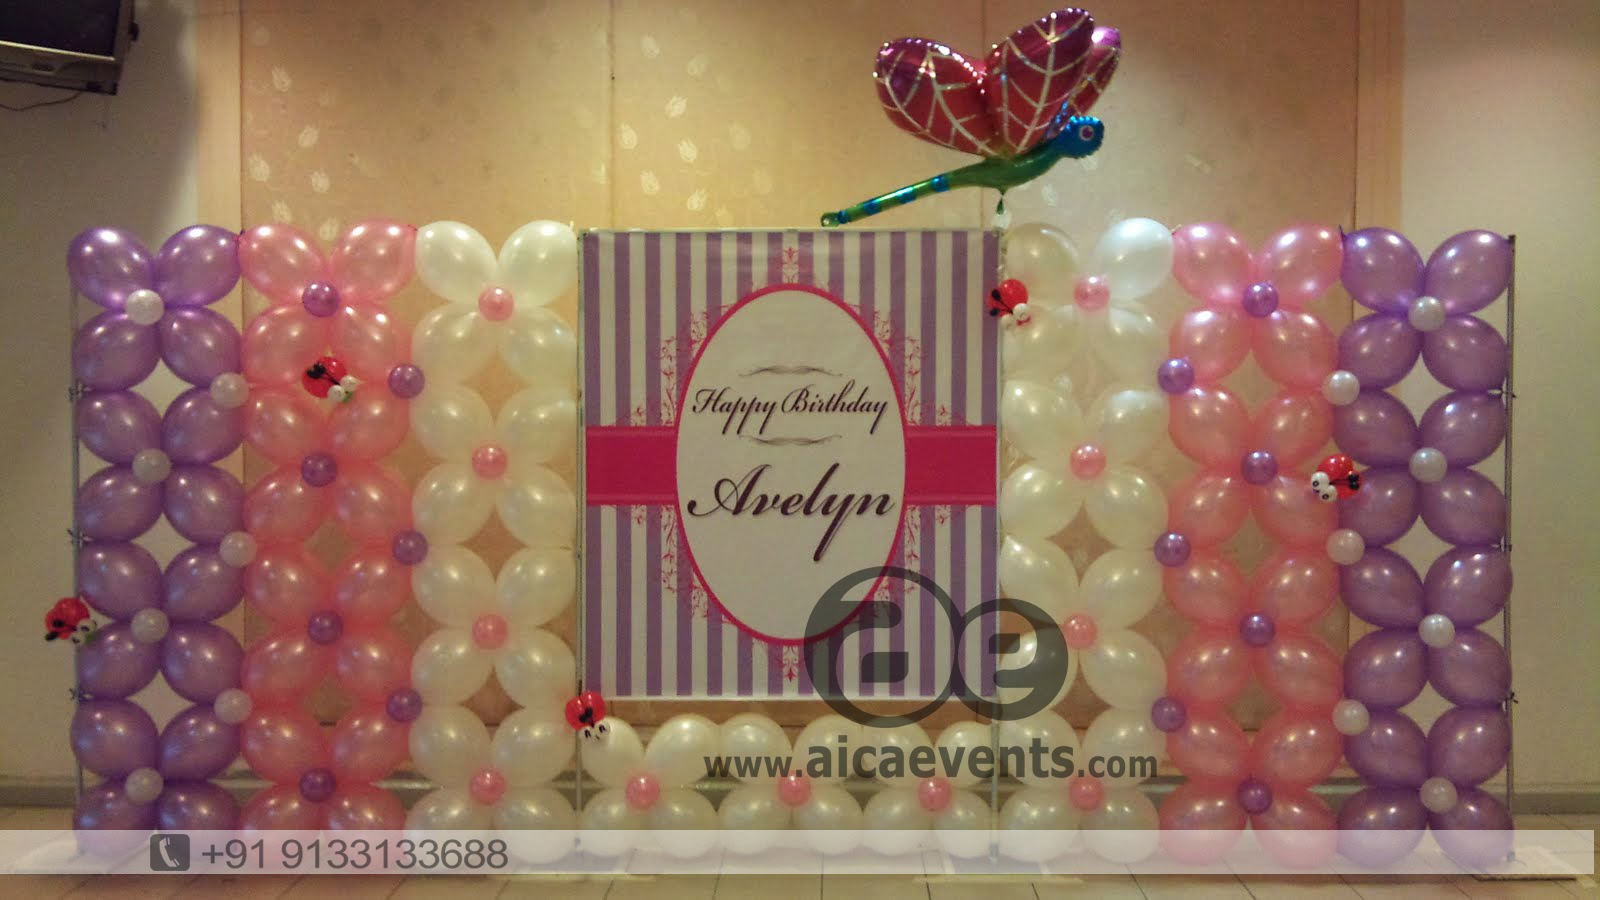 Wall Decoration For Event : Aicaevents balloon decoration for birthday parties